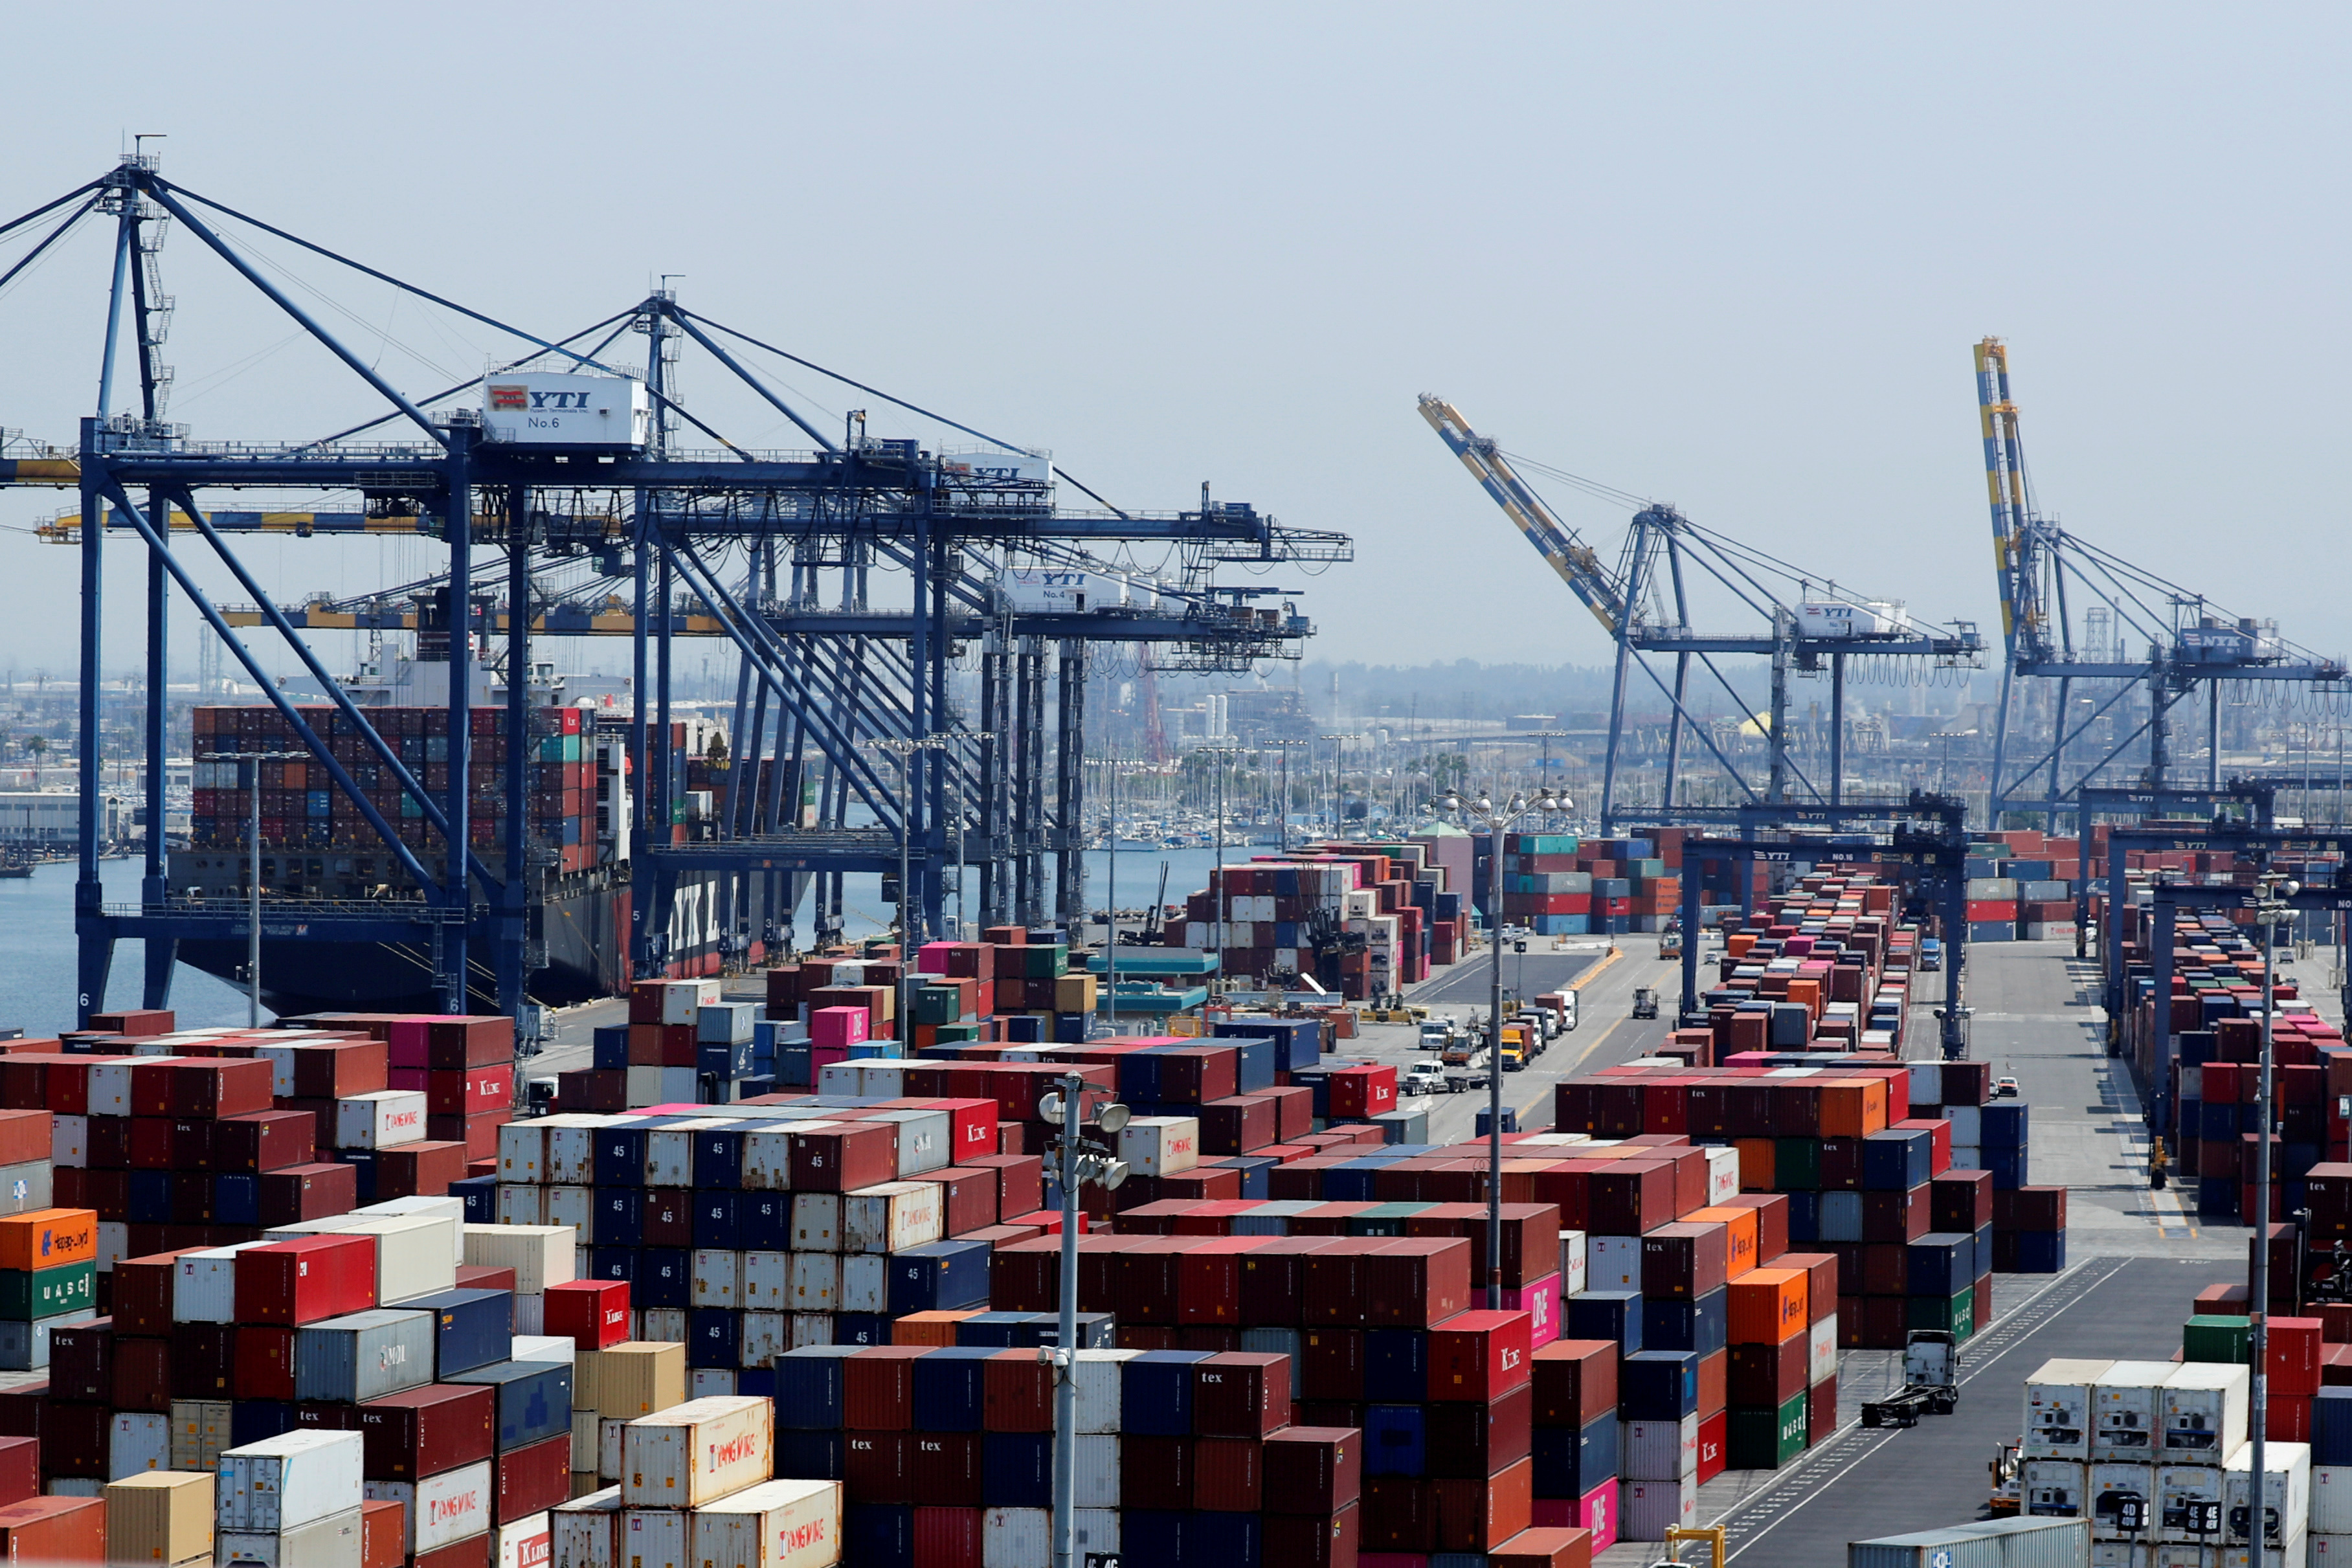 FILE PHOTO: Ship and containers are shown at the port of Los Angeles in Los Angeles, California, U.S. July 16, 2018. REUTERS/Mike Blake/File Photo